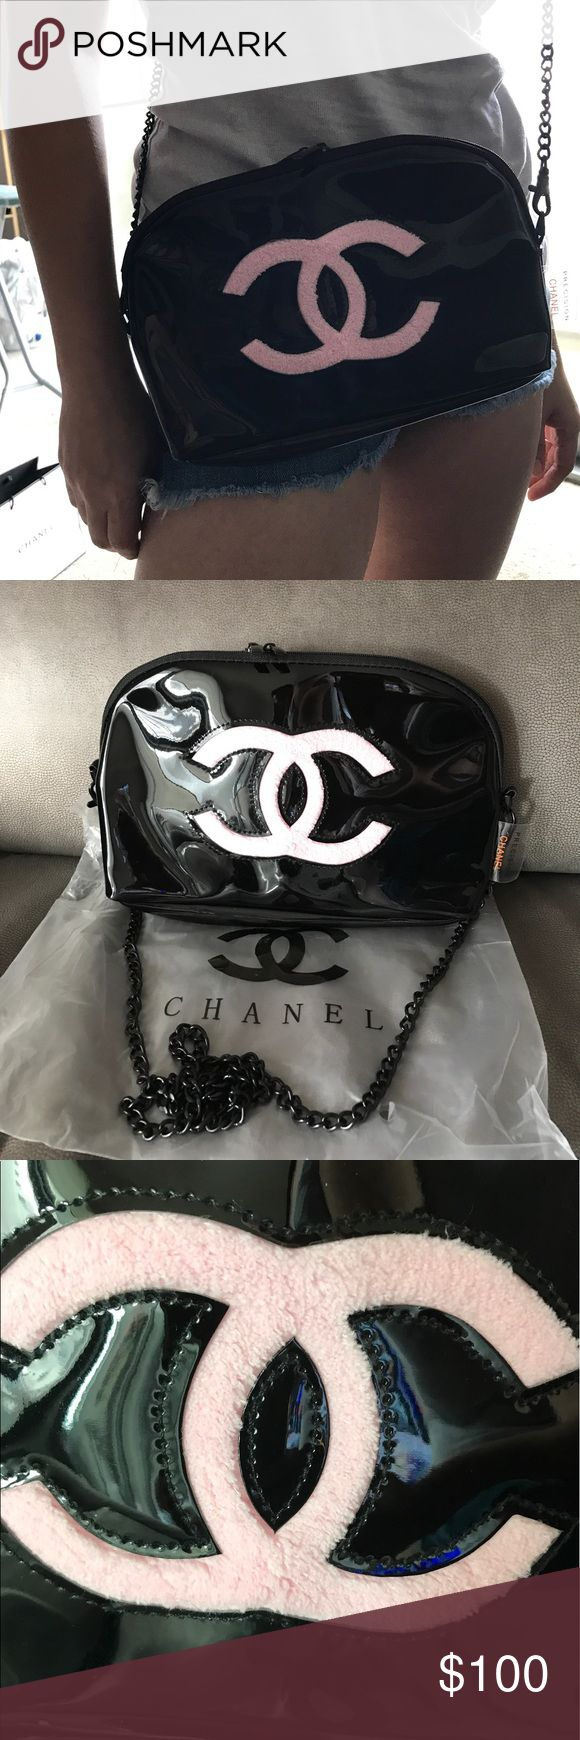 """Chanel VIP gift bag Black color pink """"CC"""" on front. Black metal chain,Two Zip closure, Pink satin lining. This is a VIP gift item, does not come with hologram sticker, authenticity card or tags. This Chanel VIP gift only in Asia not in US. W: 10""""H: 6.5""""D: 4.25"""" Shoulder strap drop: 18"""" CHANEL Bags Crossbody Bags"""